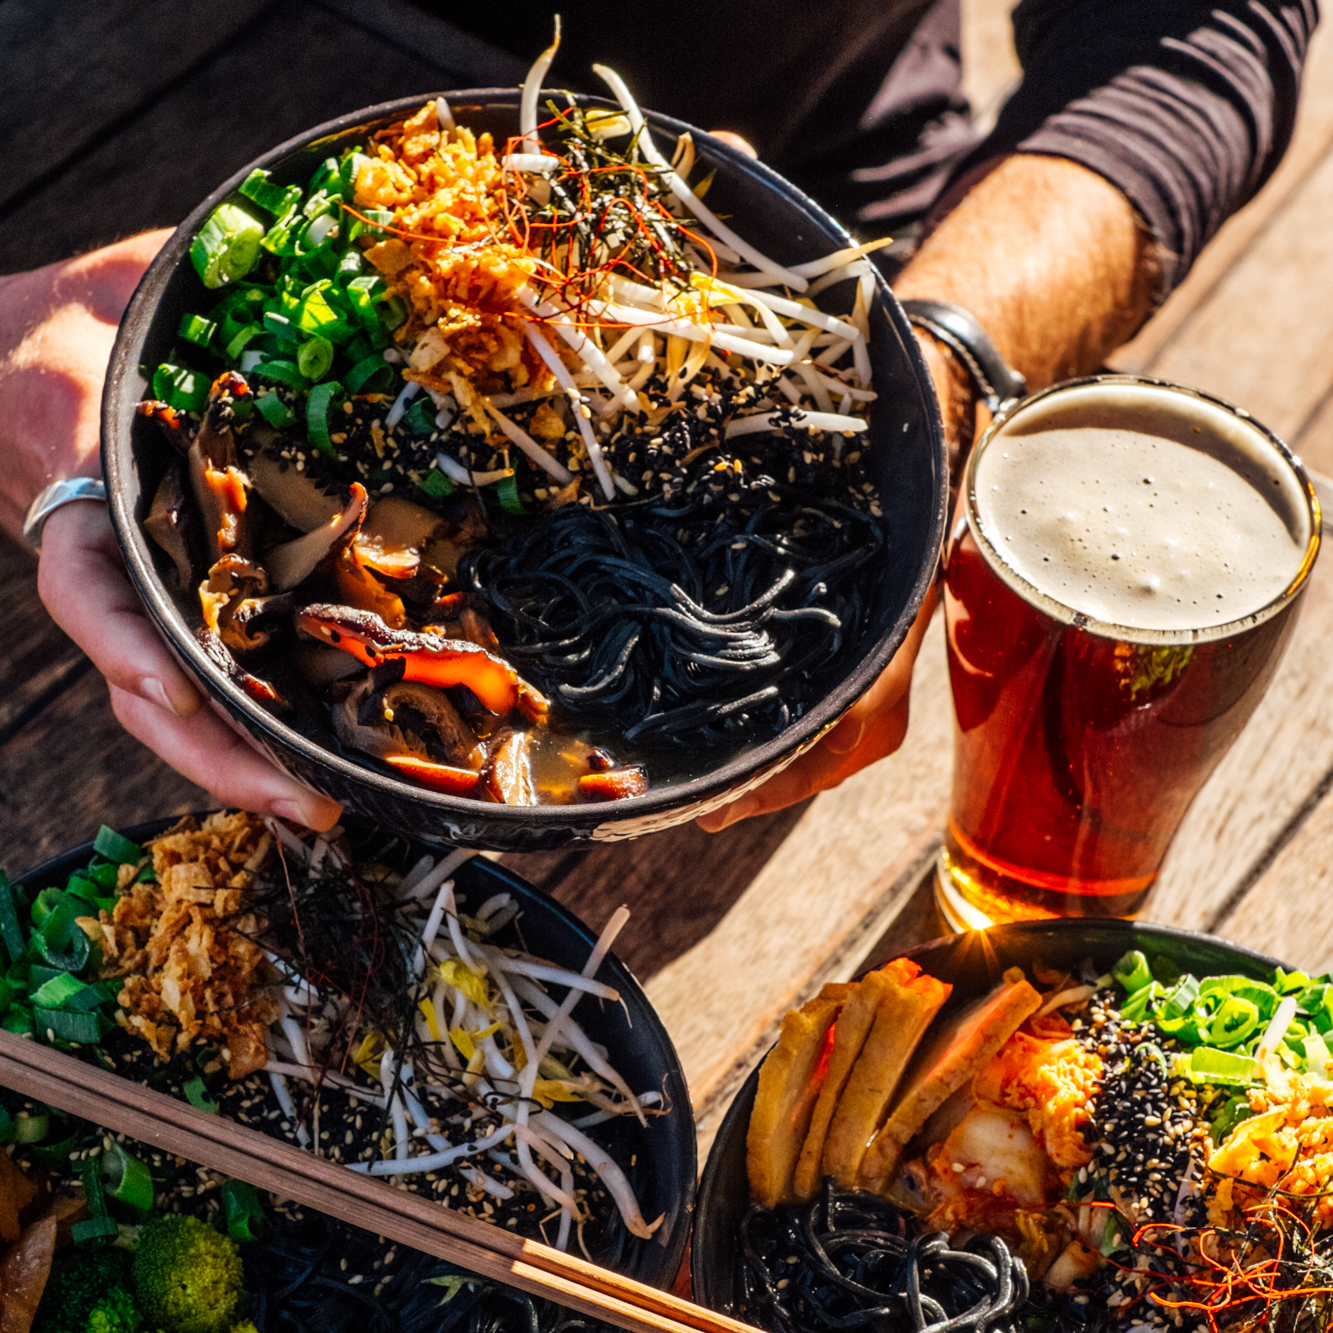 Free Charcoal noodle upgrade on our Chick'n white miso, Shiitake mushroom or Spicy kimchi bowls + a schooner of Rogers Amber Ale$20 - In-store only, every Friday!